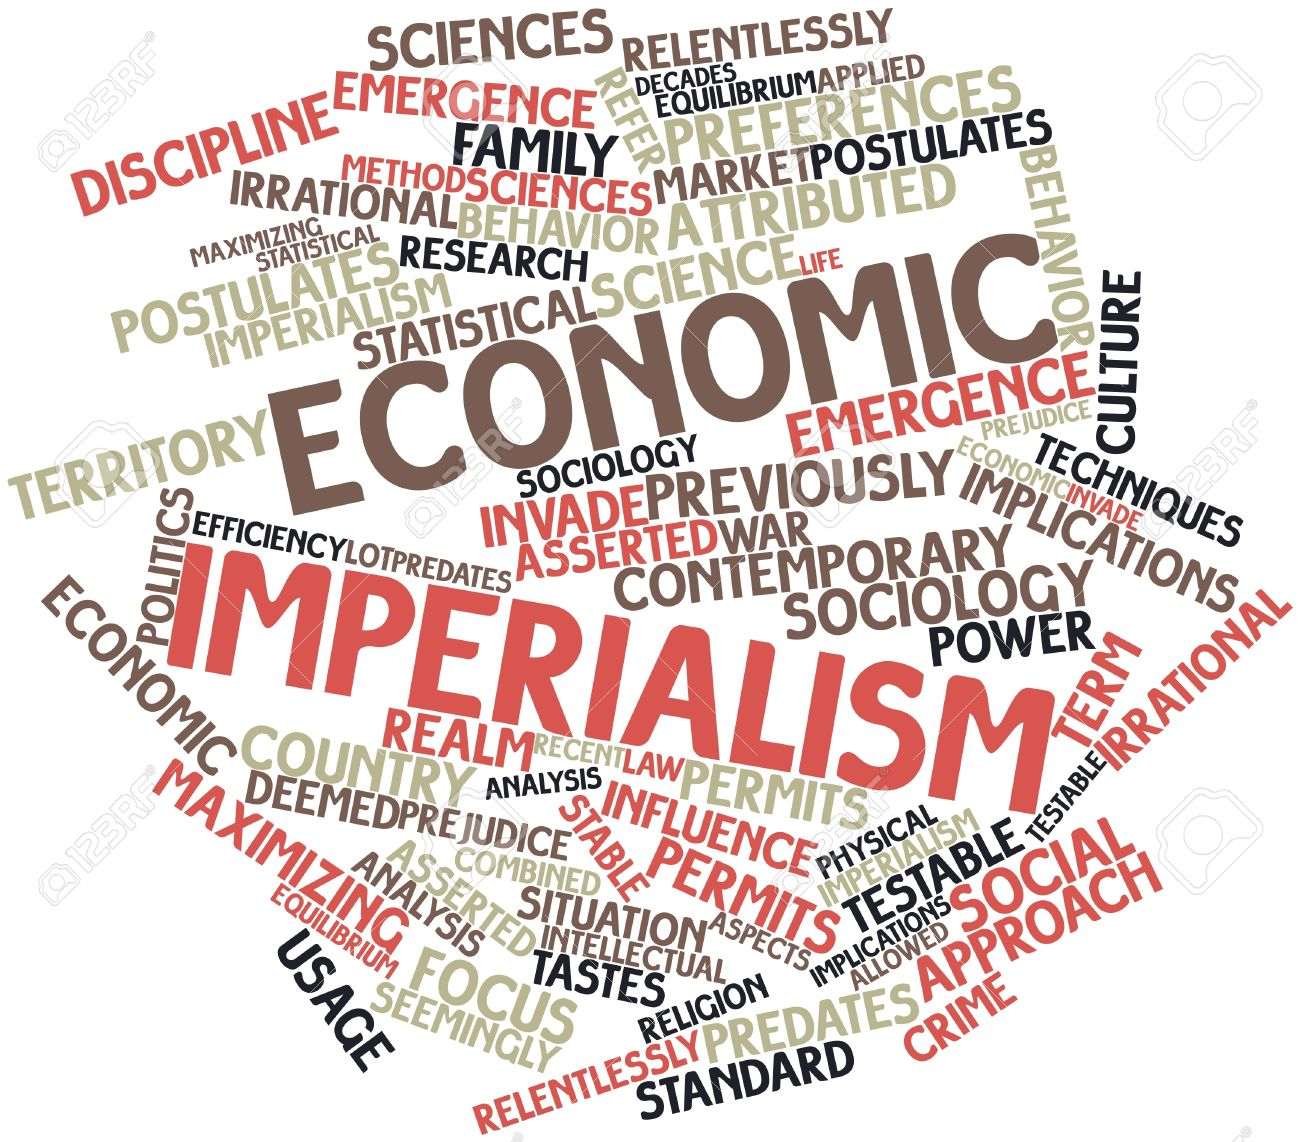 Abstract Word Cloud For Economic Imperialism With Related Tags  Abstract Word Cloud For Economic Imperialism With Related Tags And Terms Stock Photo Photo  Abstract Word Cloud For Economic Imperialism With Related Tags And Terms